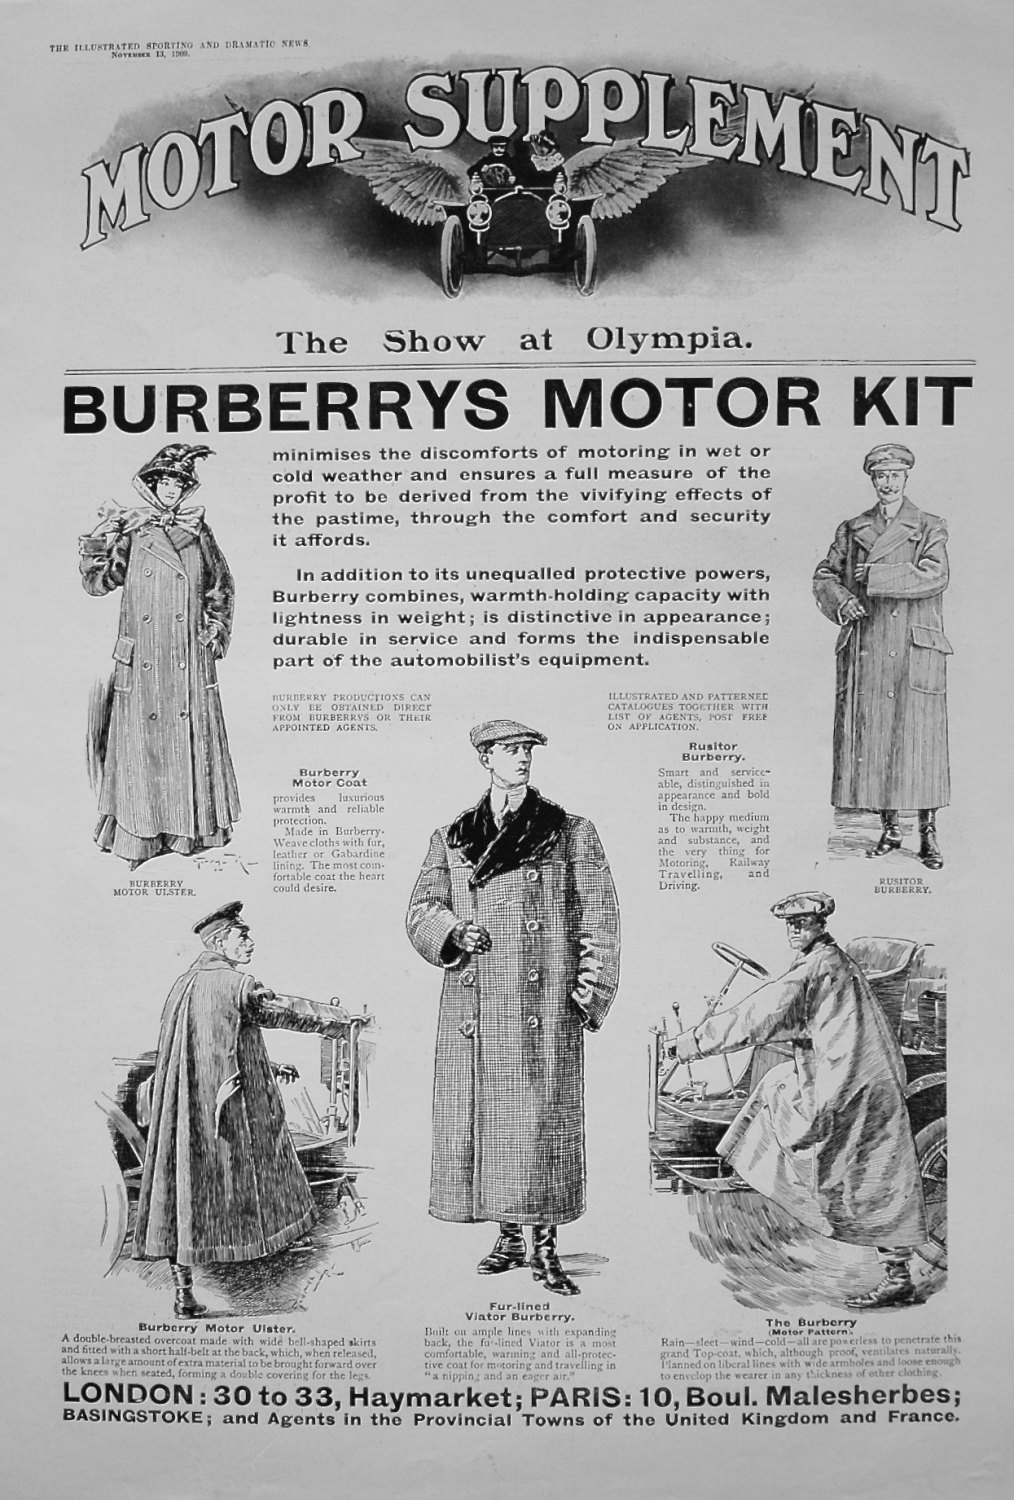 Burberrys Motor Kit. November 13th 1909